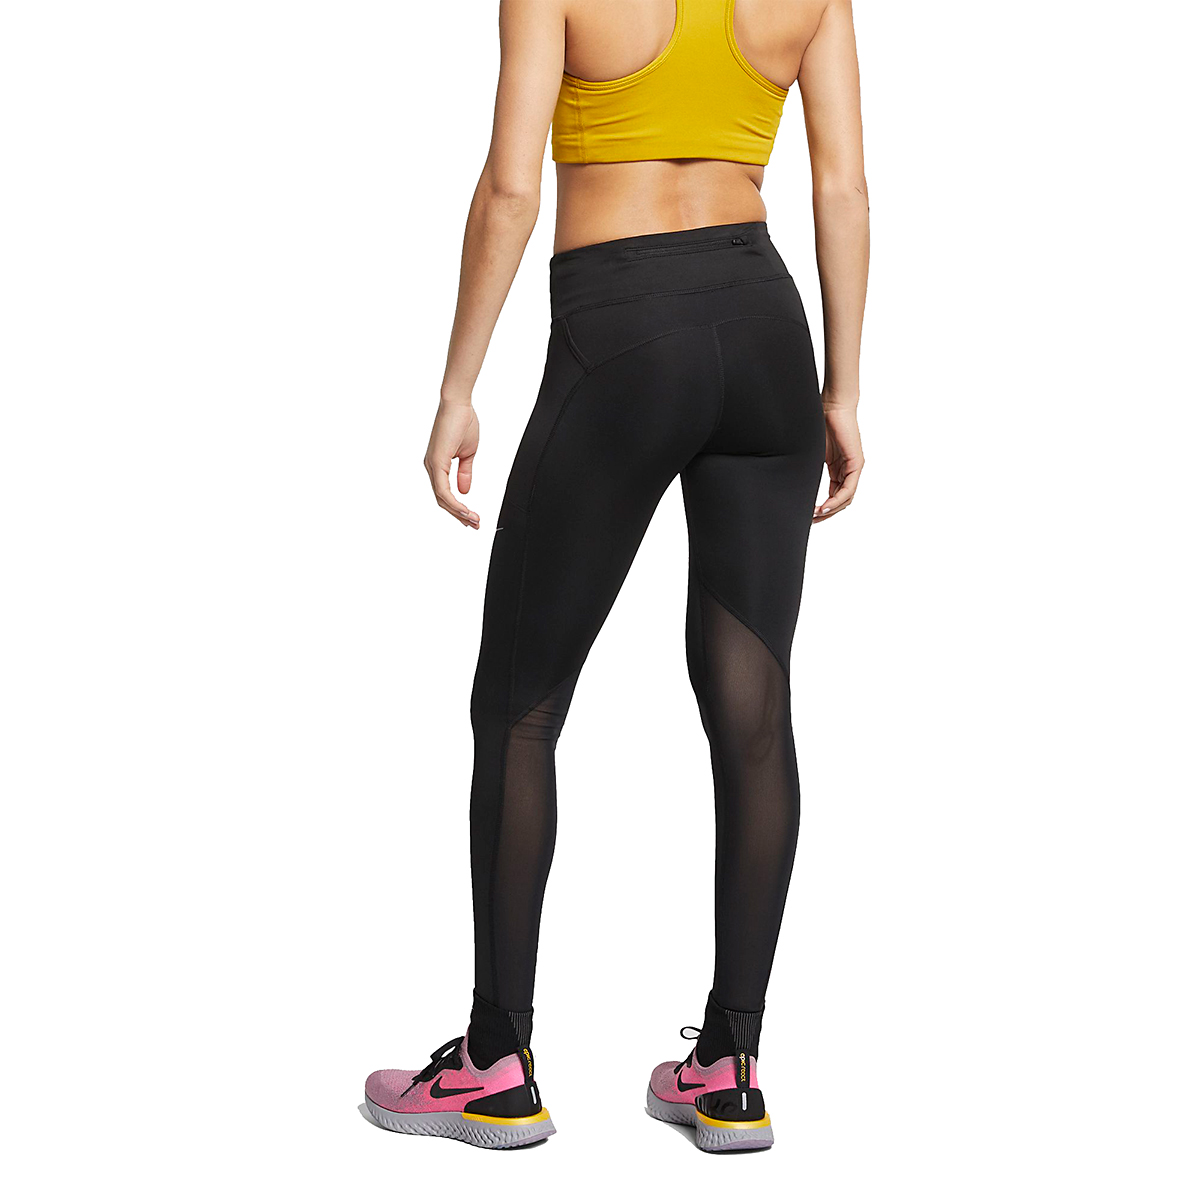 Women's Nike Fast Running Tights - Color: Black - Size: XS, Black, large, image 2